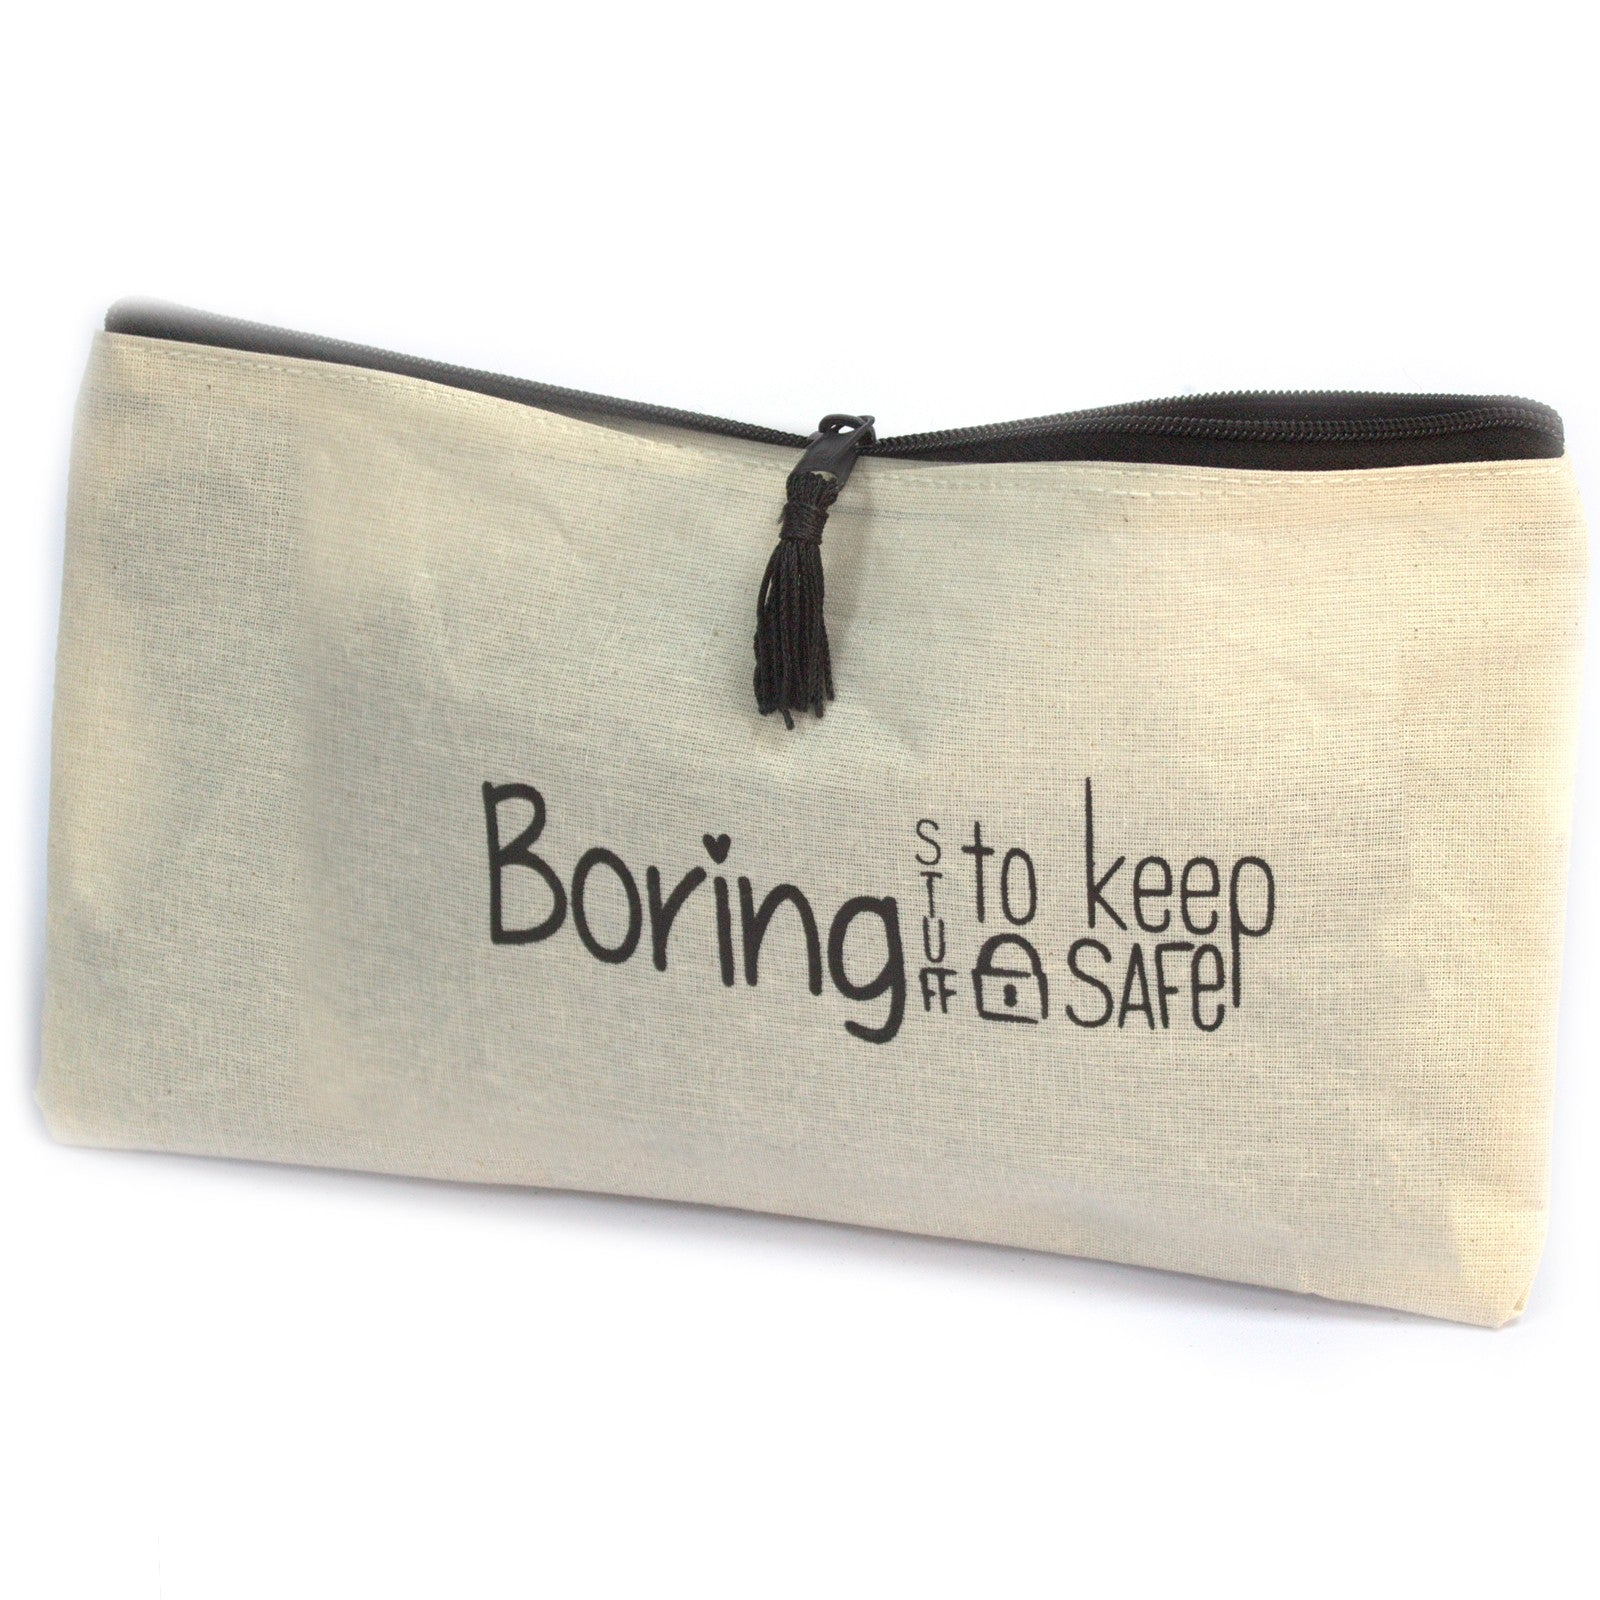 Zipped Pouch - To Keep Boring Stuff Safe - 28x16cm